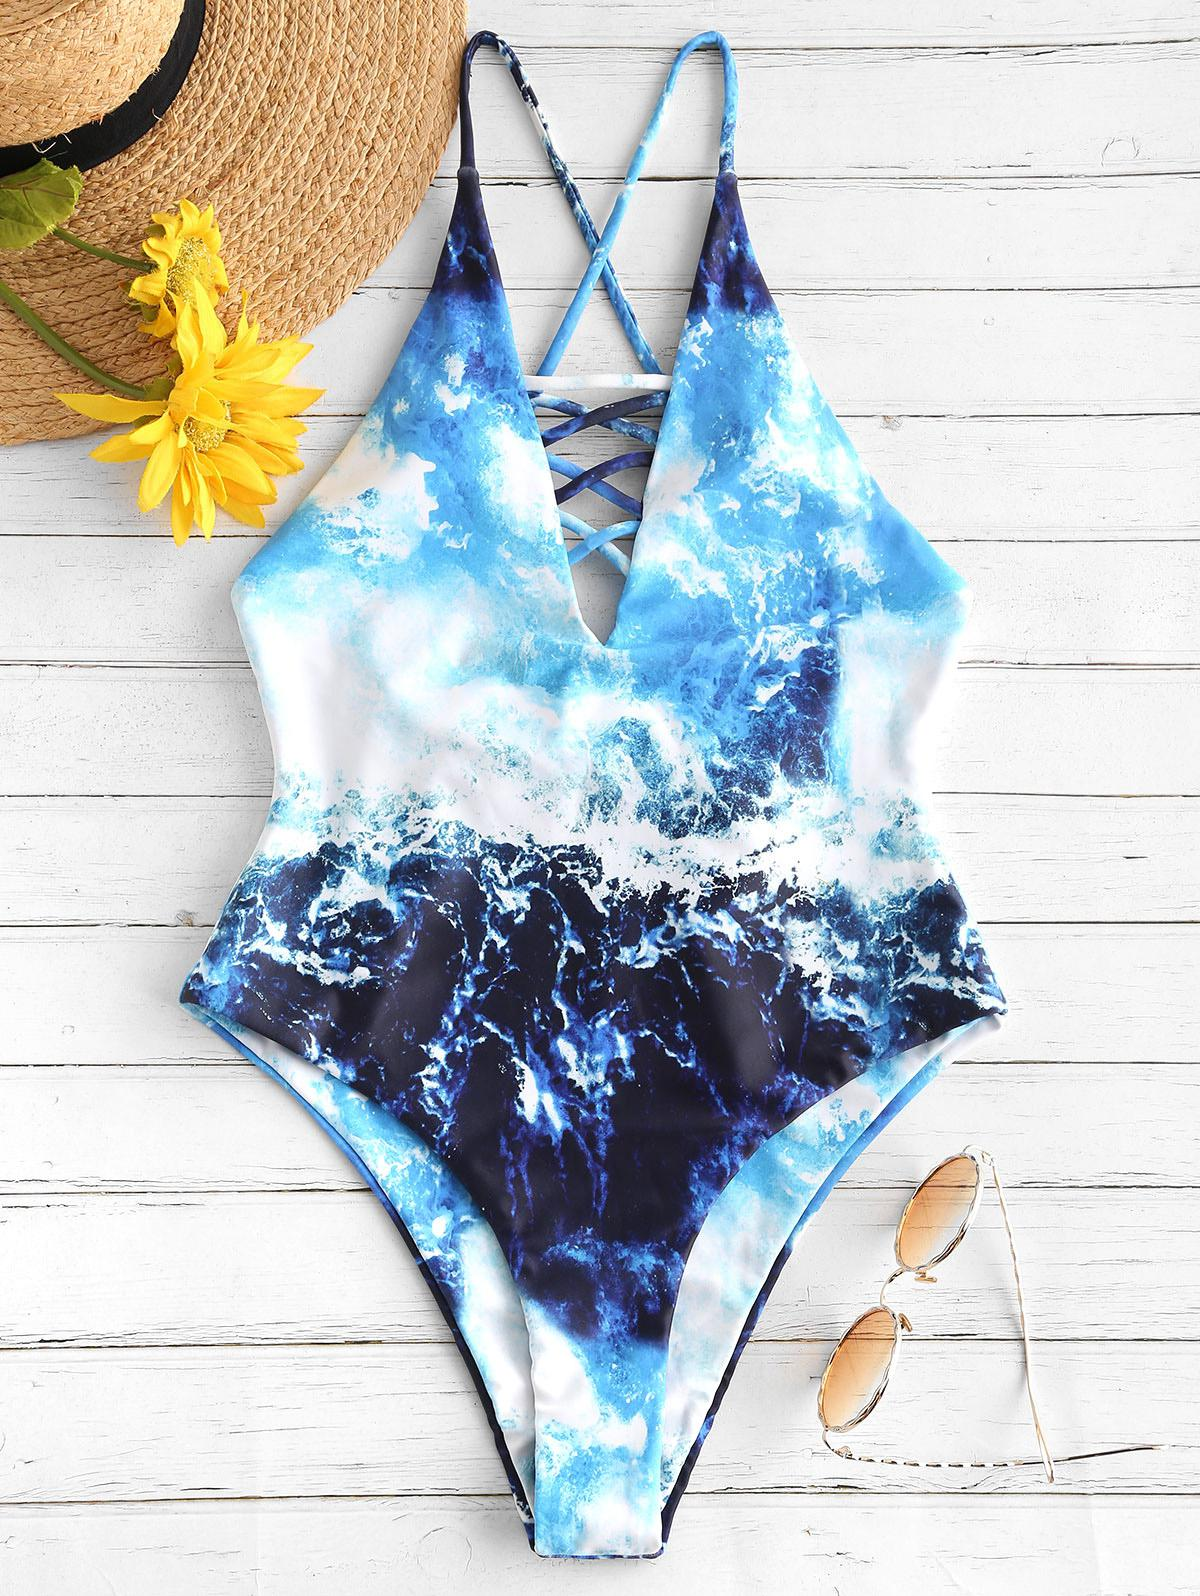 ZAFUL Wave Print Criss Cross Backless Swimsuit, Multi-a